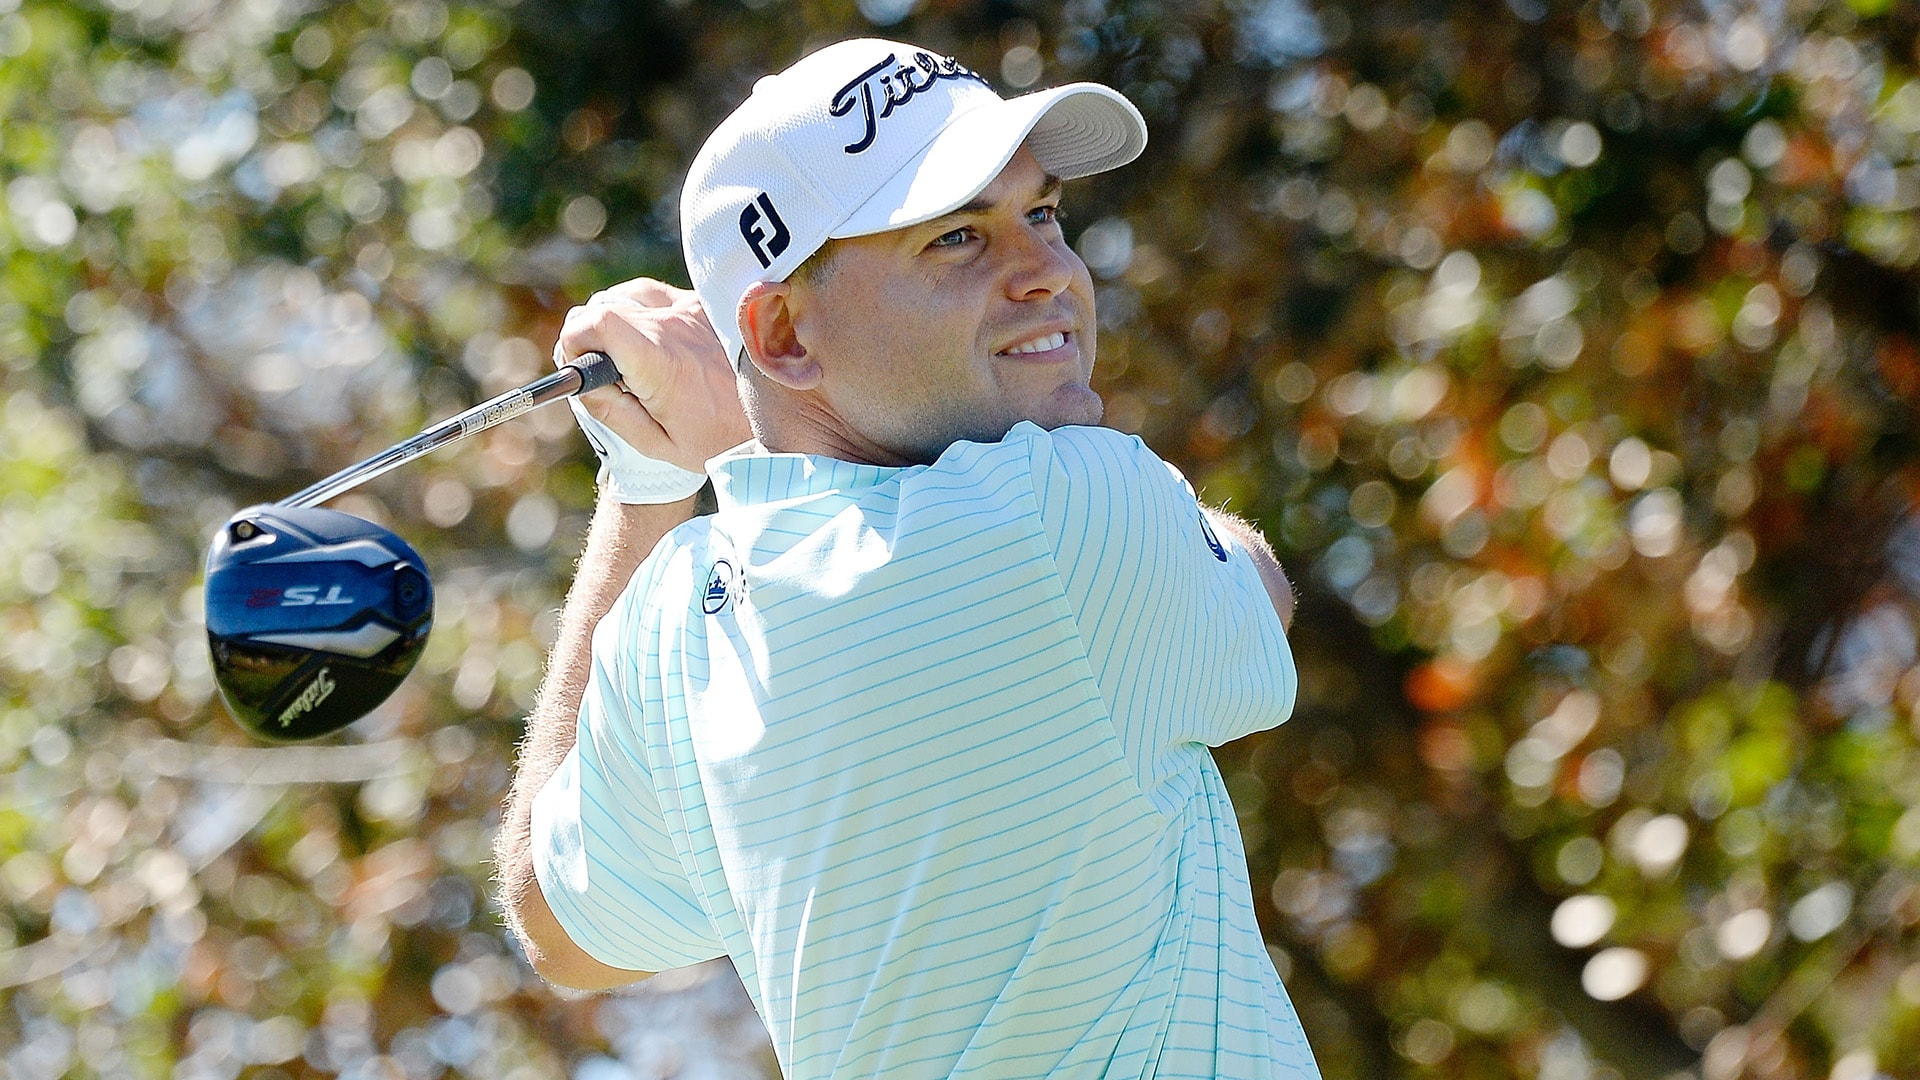 Bill Haas at the 2018 Safeway Open